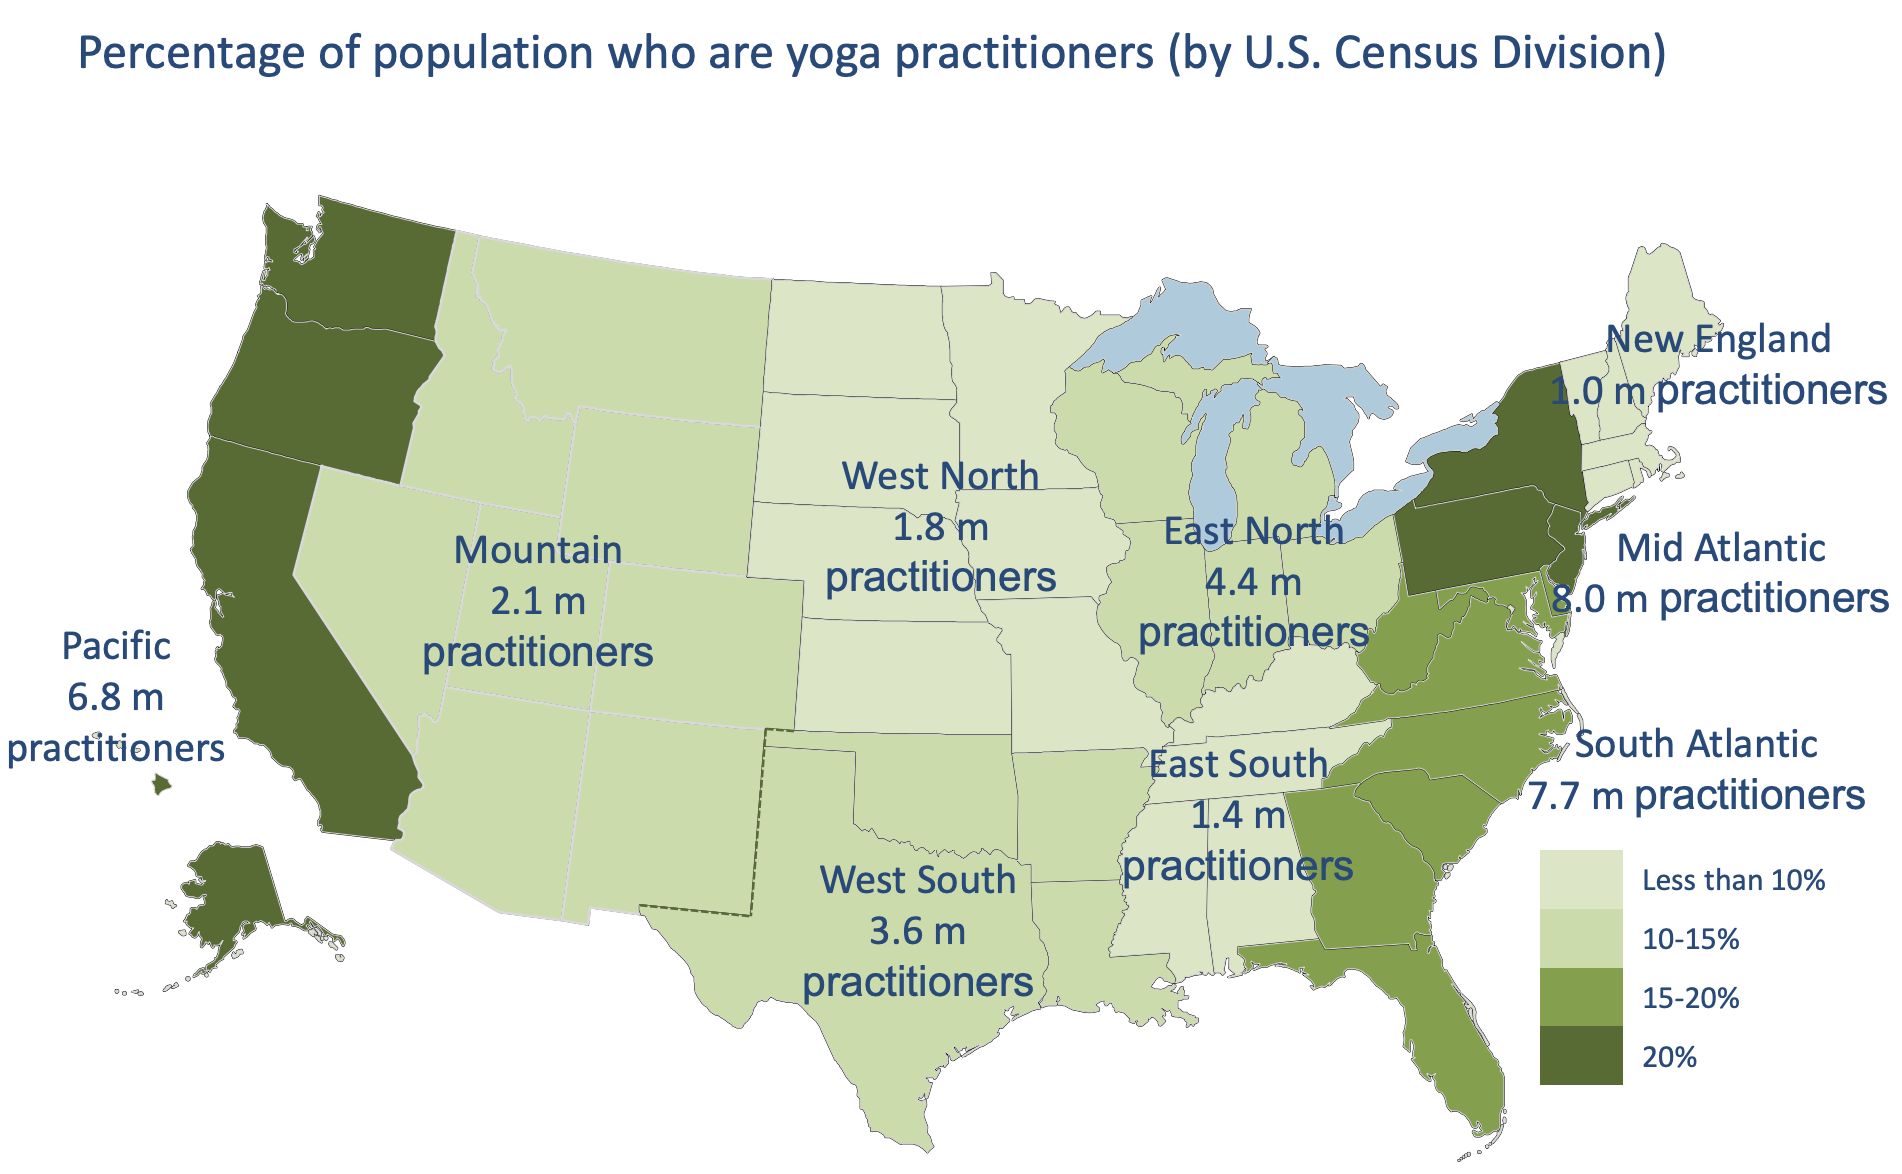 spread of yoga across different states and regions